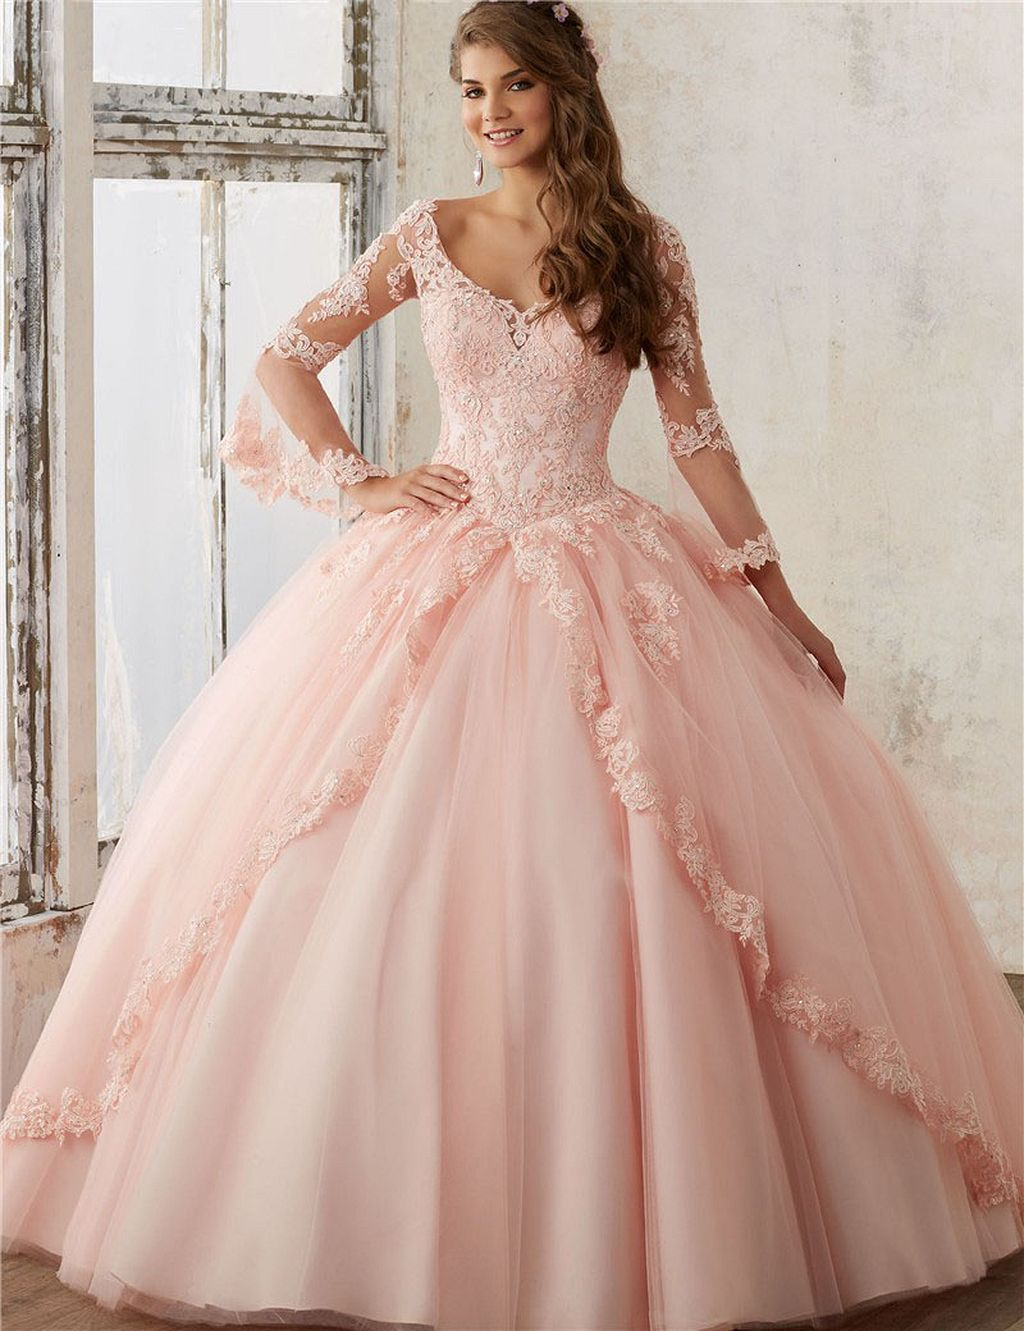 20+ Vintage Quinceanera Dresses For Your Wedding